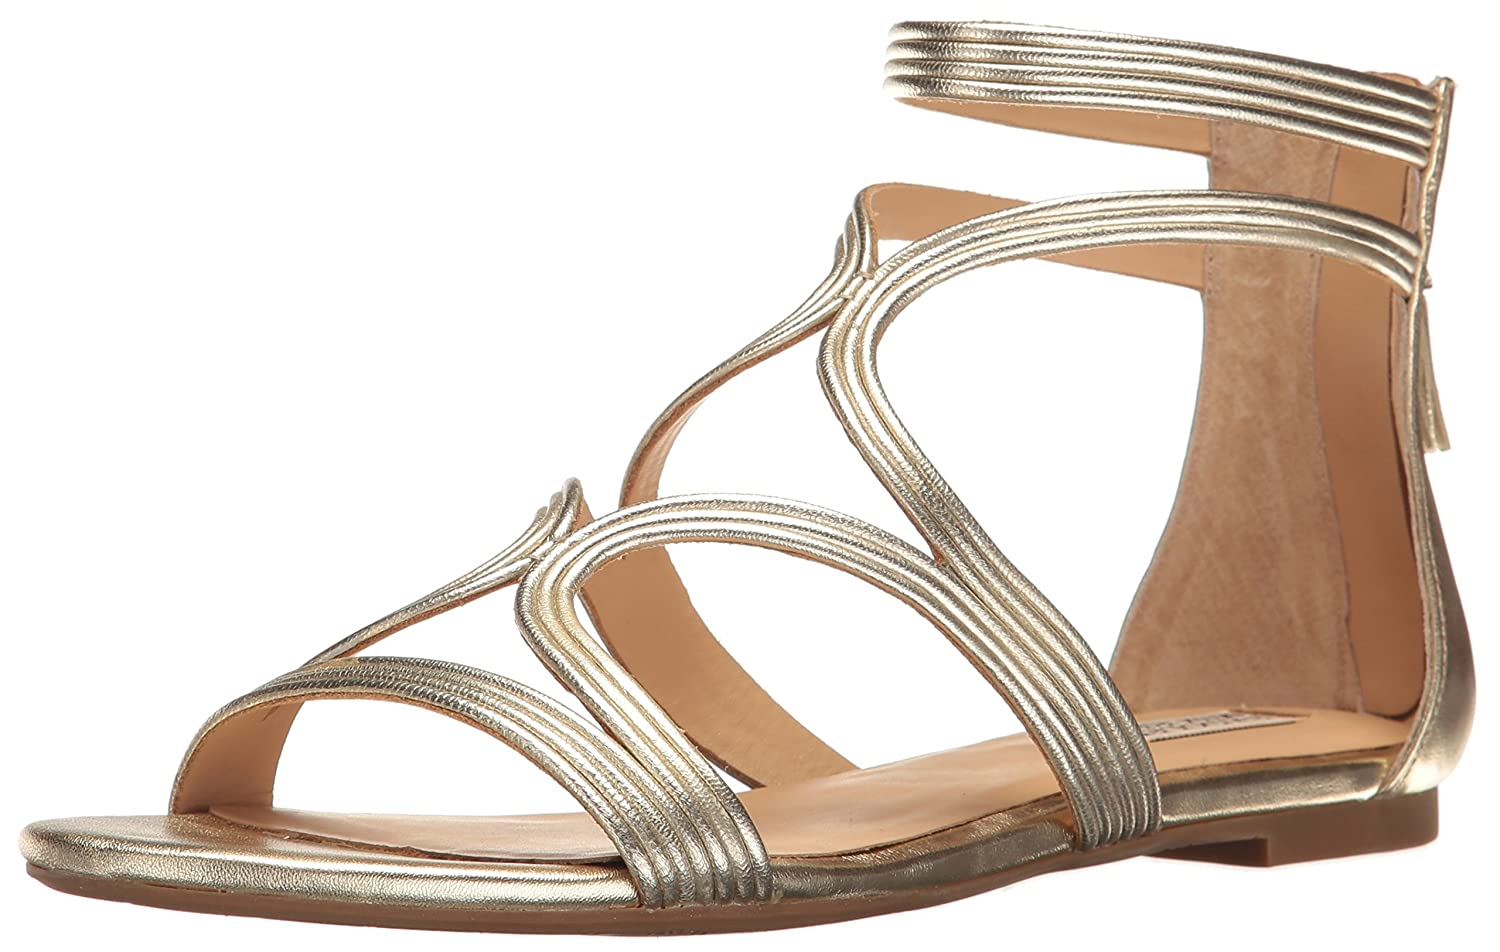 Badgley Mischka Women's Torrence Dress Sandal B01MA35QGX 8 B(M) US|Platino